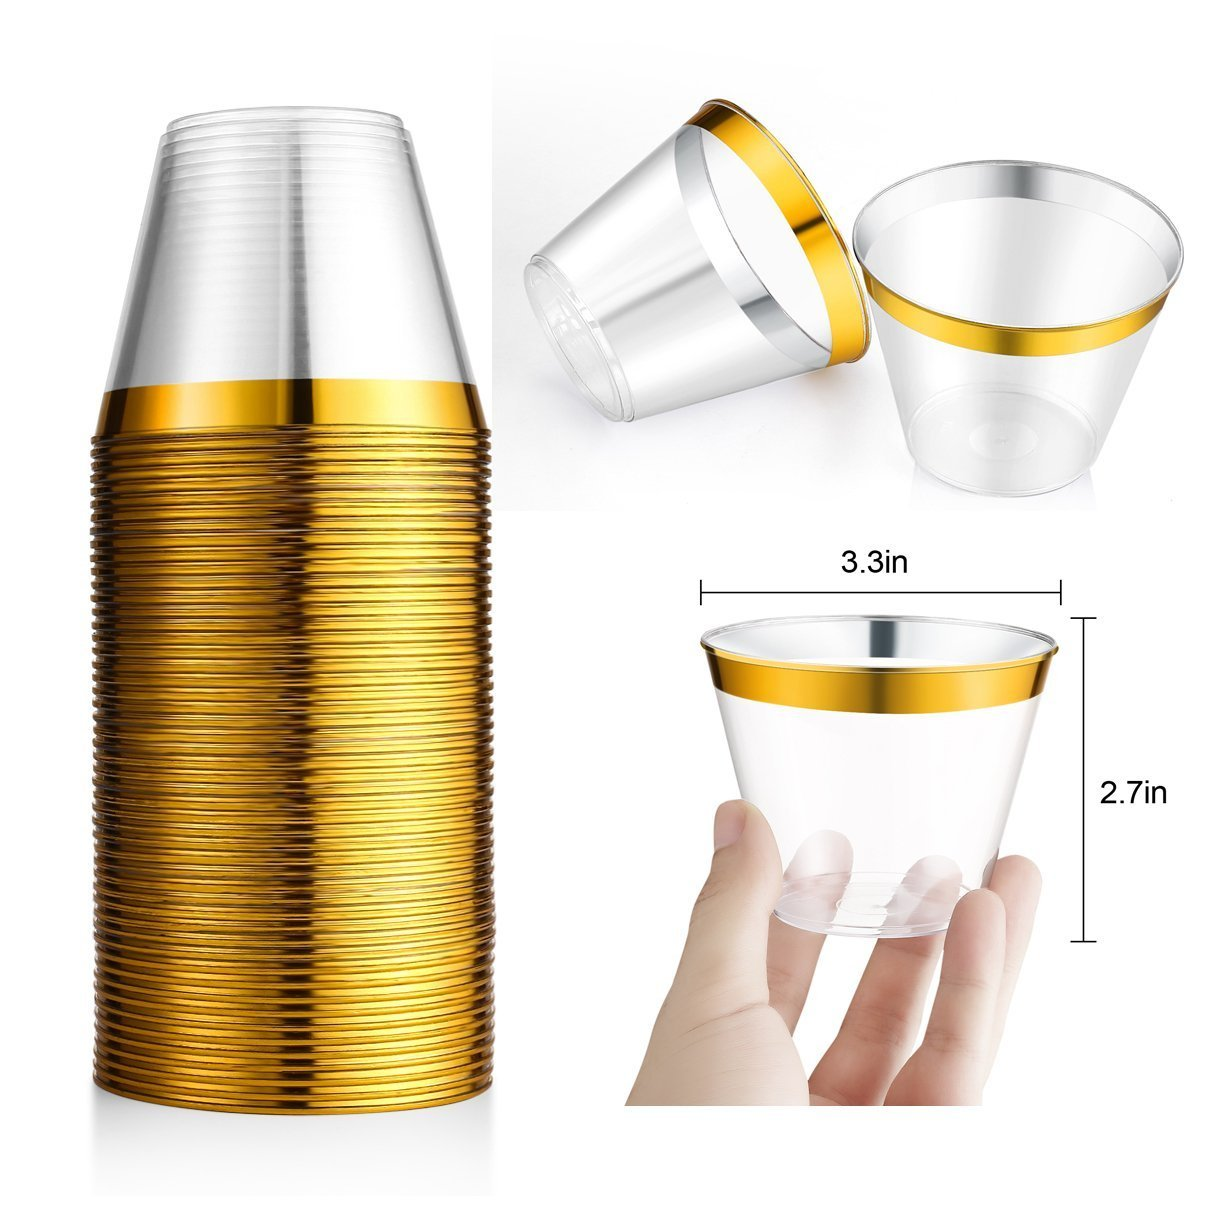 50Pcs Gold Plastic Cups ~ 9 Oz Clear Plastic Cups Old Fashioned Tumblers ~ Gold Rimmed Cups Fancy Disposable Wedding Cups ~ Elegant Party Cups with Gold Rim Kangsanli by Kangsanli